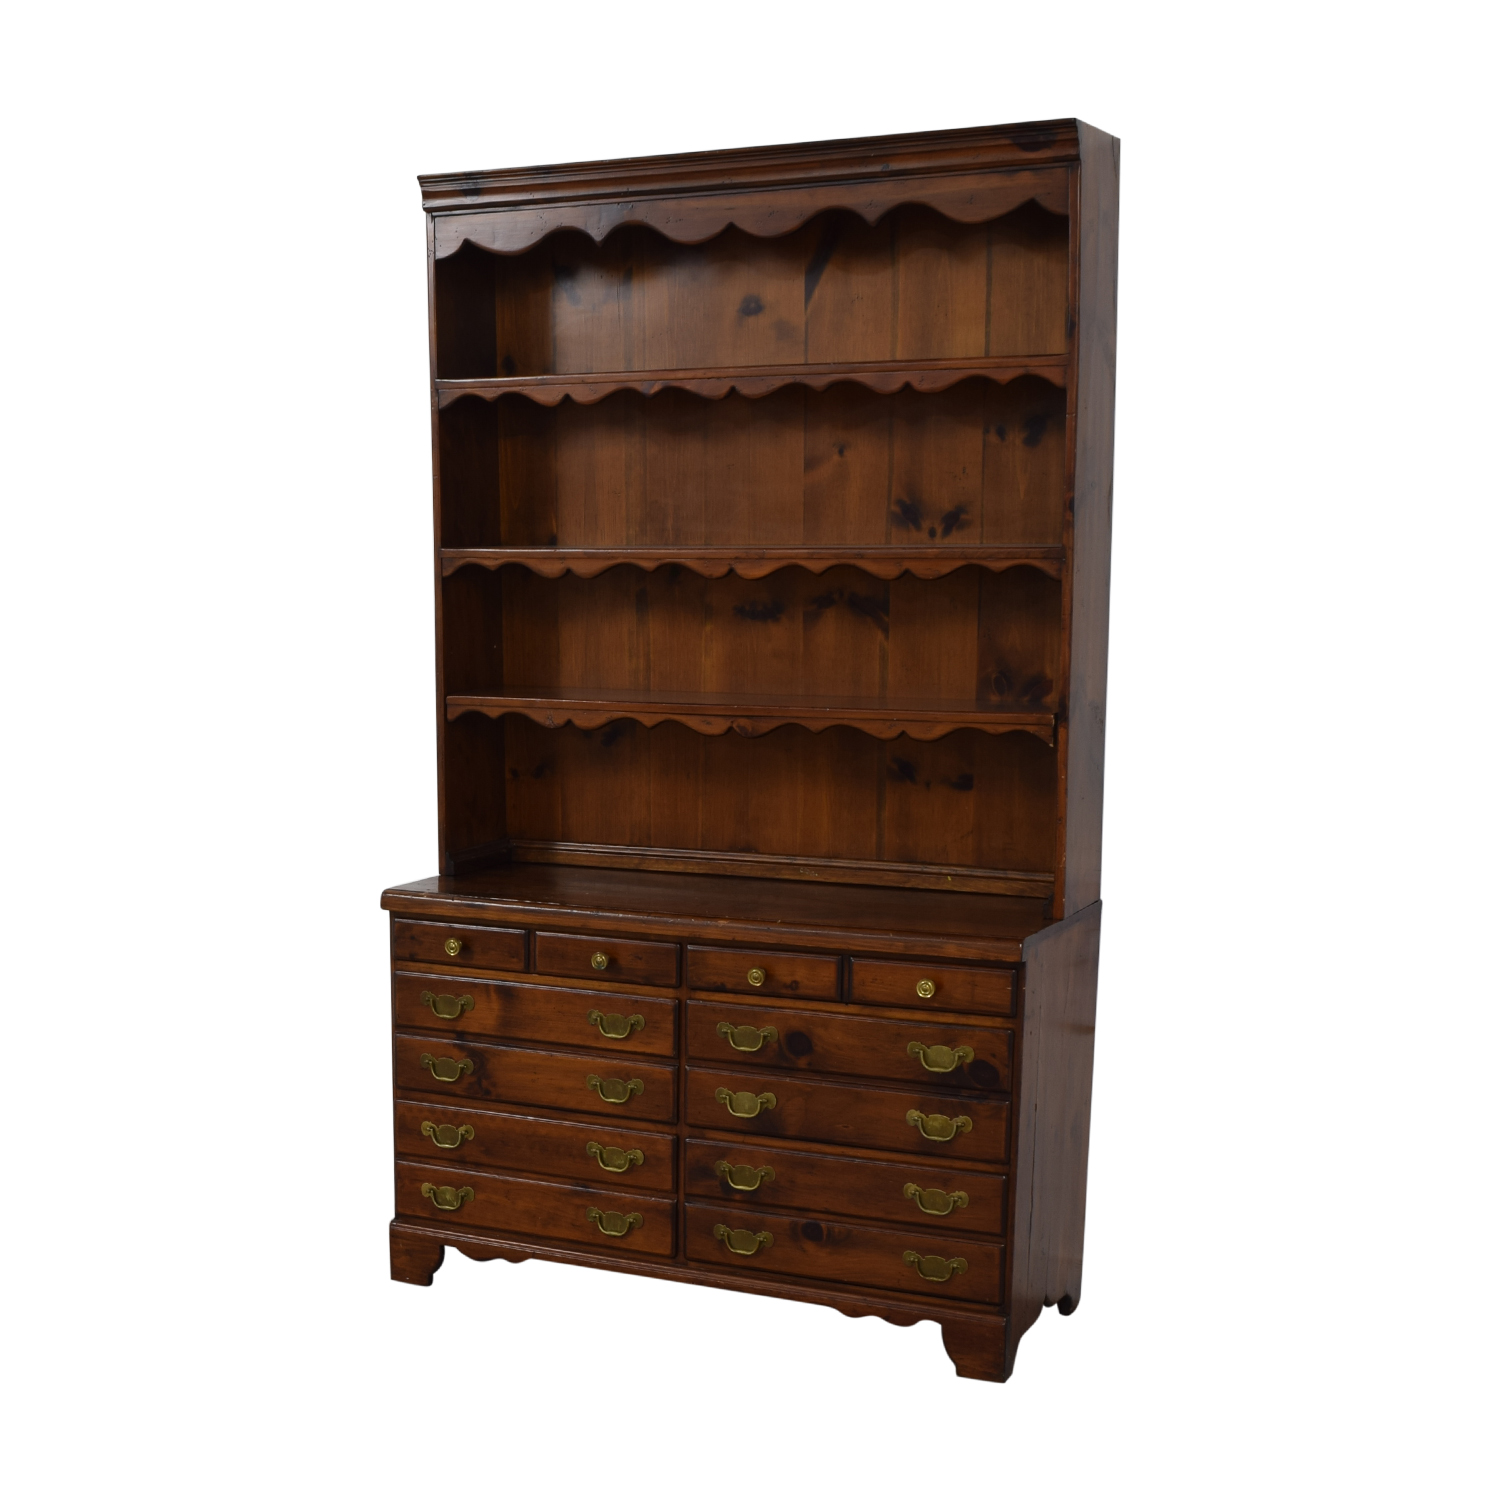 Wood Twelve-Drawer Dovetailed Sideboard with Hutch / Cabinets & Sideboards